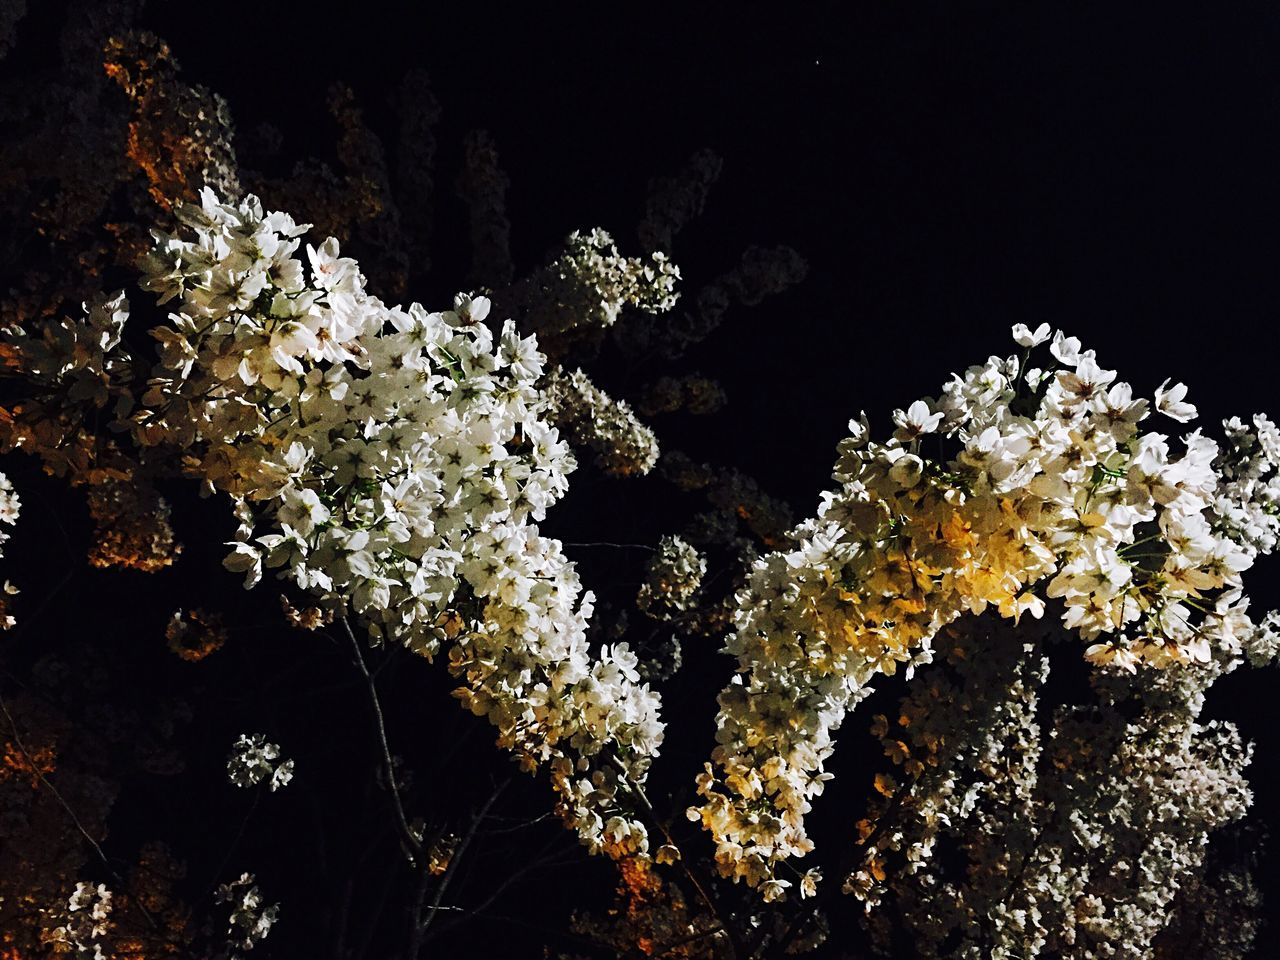 Flowers Flower Flower Collection IPhoneography Iphonephotography Iphonography ByAlex Nightphotography Night